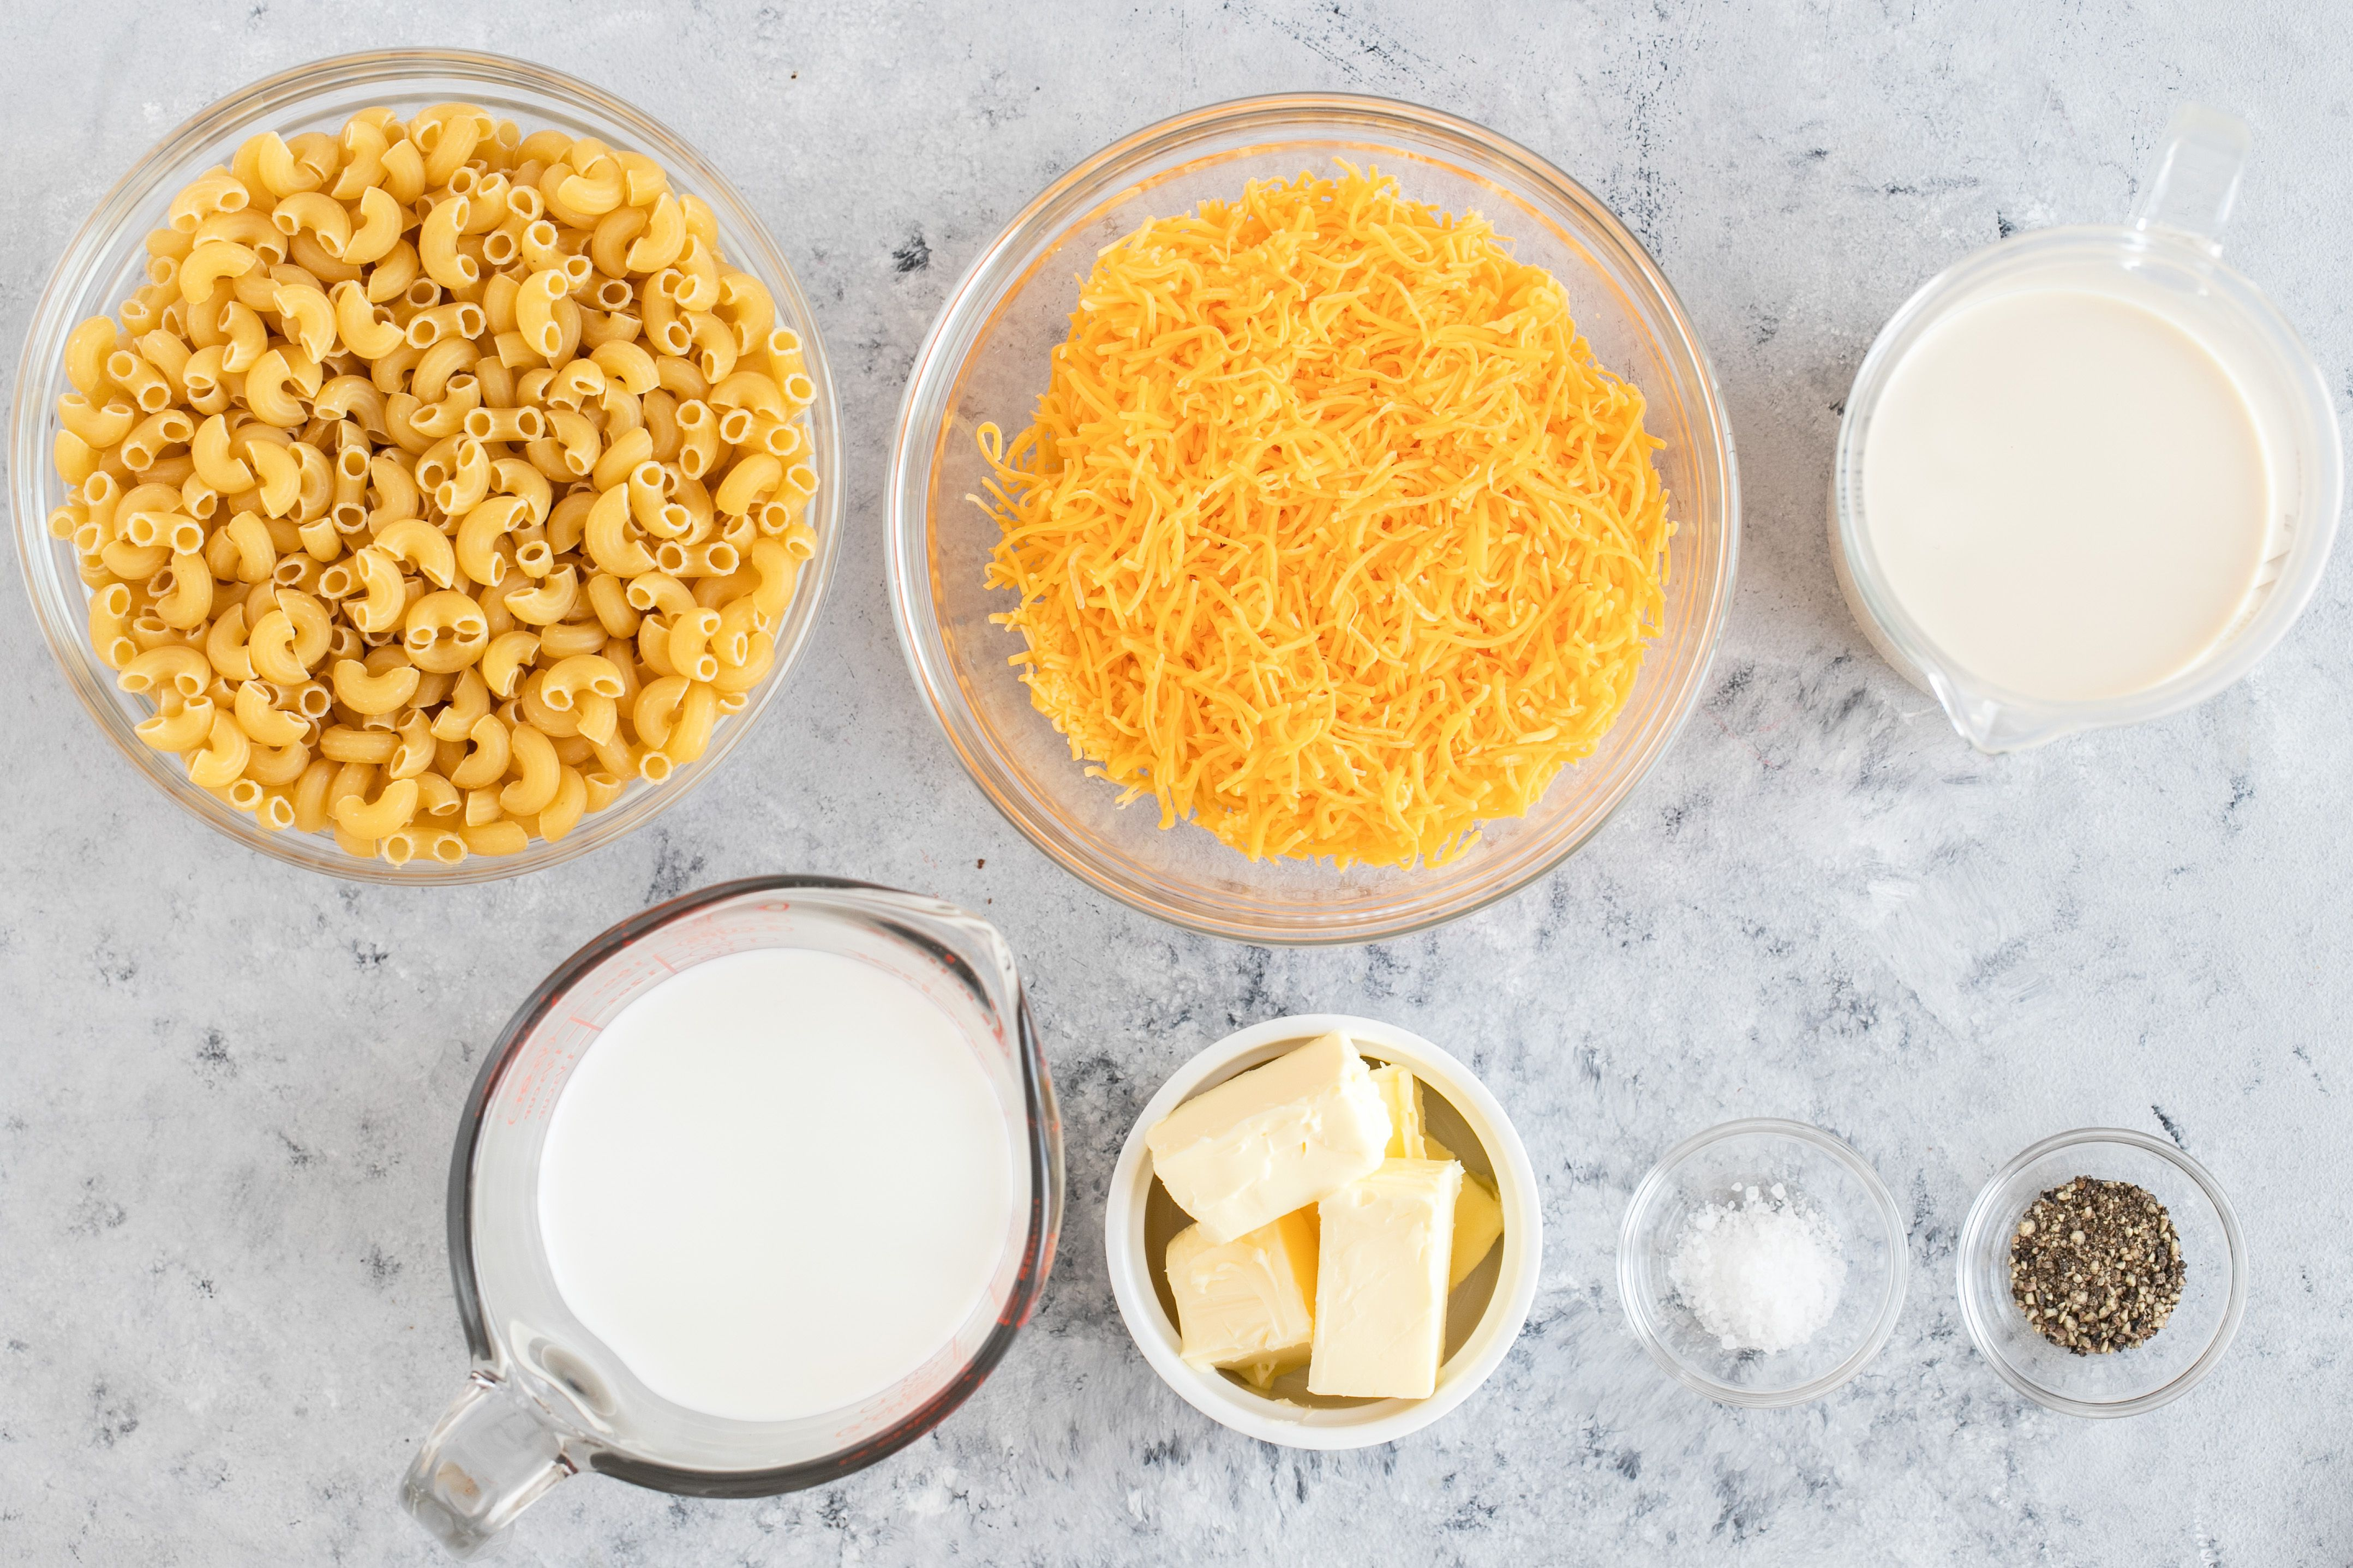 Ingredients for crockpot mac and cheese